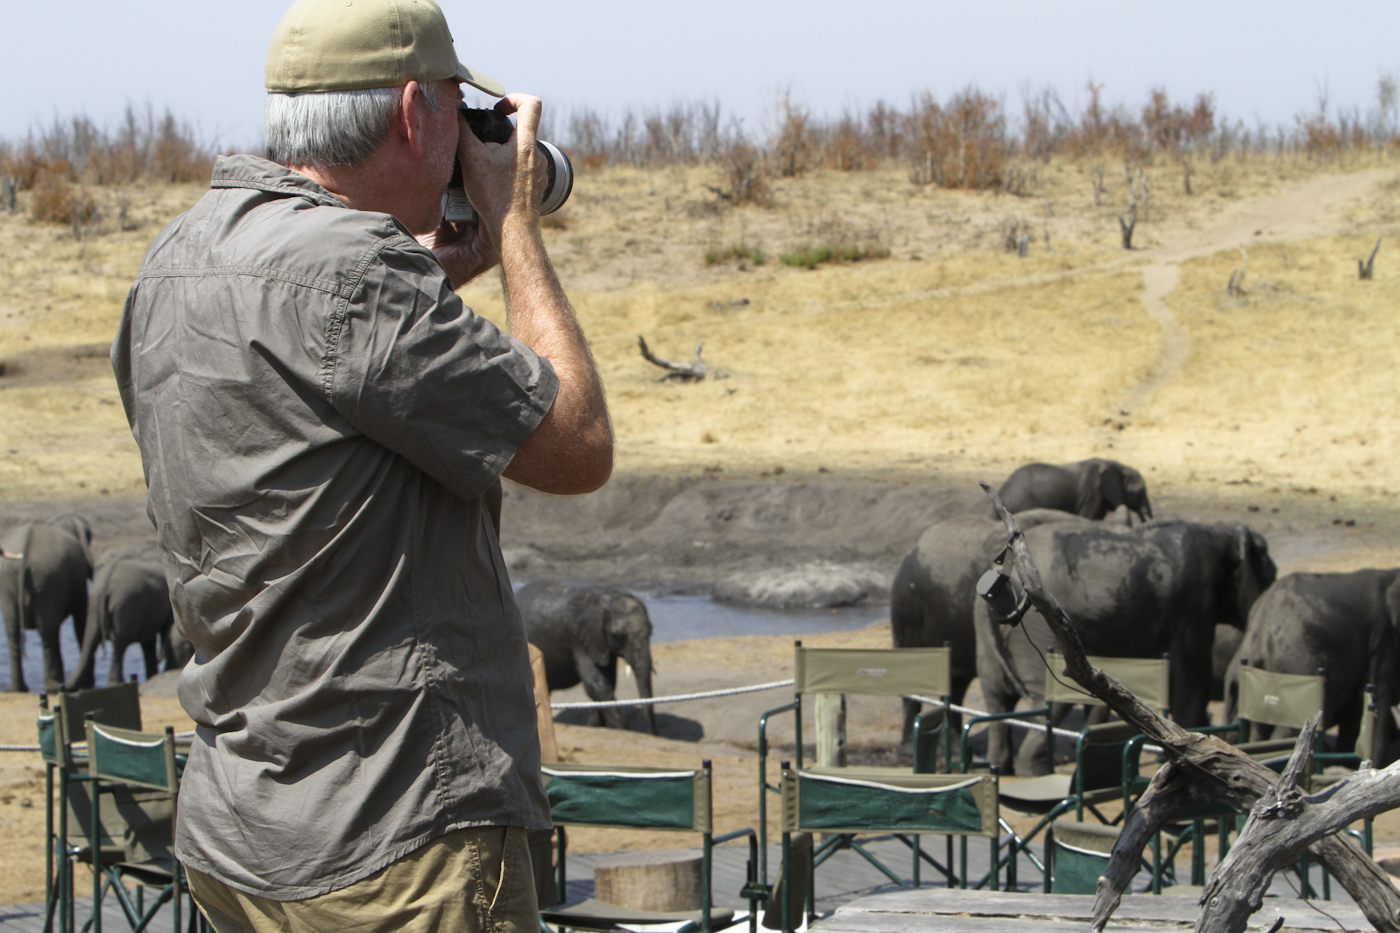 Unforgettable Zimbabwe Safari - Exclusive Adventures - Photo Safari